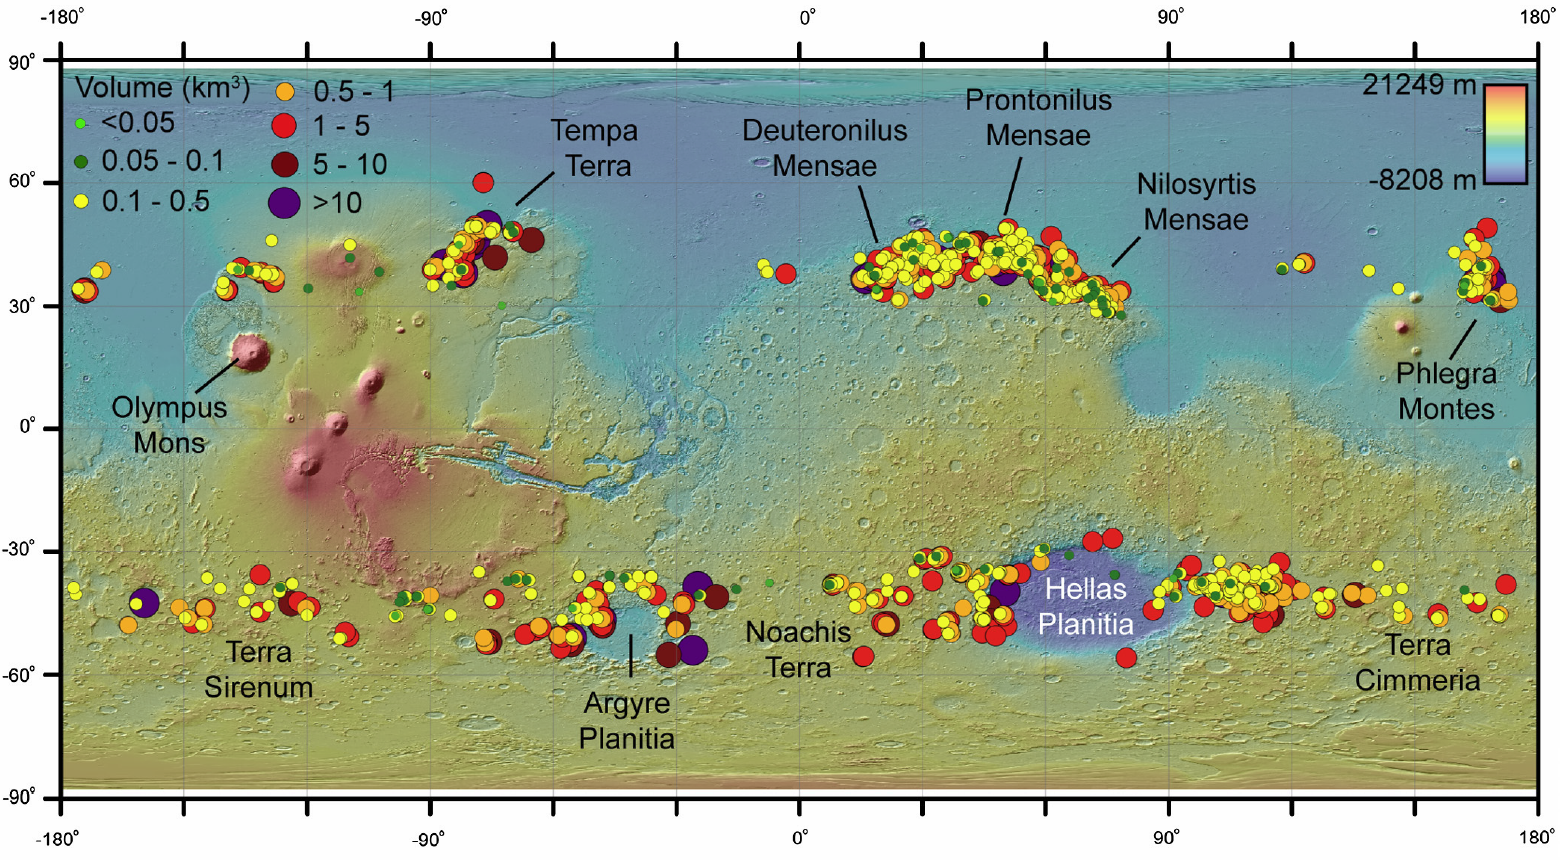 Map of Mars showing known mid-latitude glaciers and their relative volume. Global glacier volume is 1743.60 km³, with 1045.10 km³ in northern hemisphere and 698.49 km³ in the southern hemisphere. Credit: Brough et al. 2018.